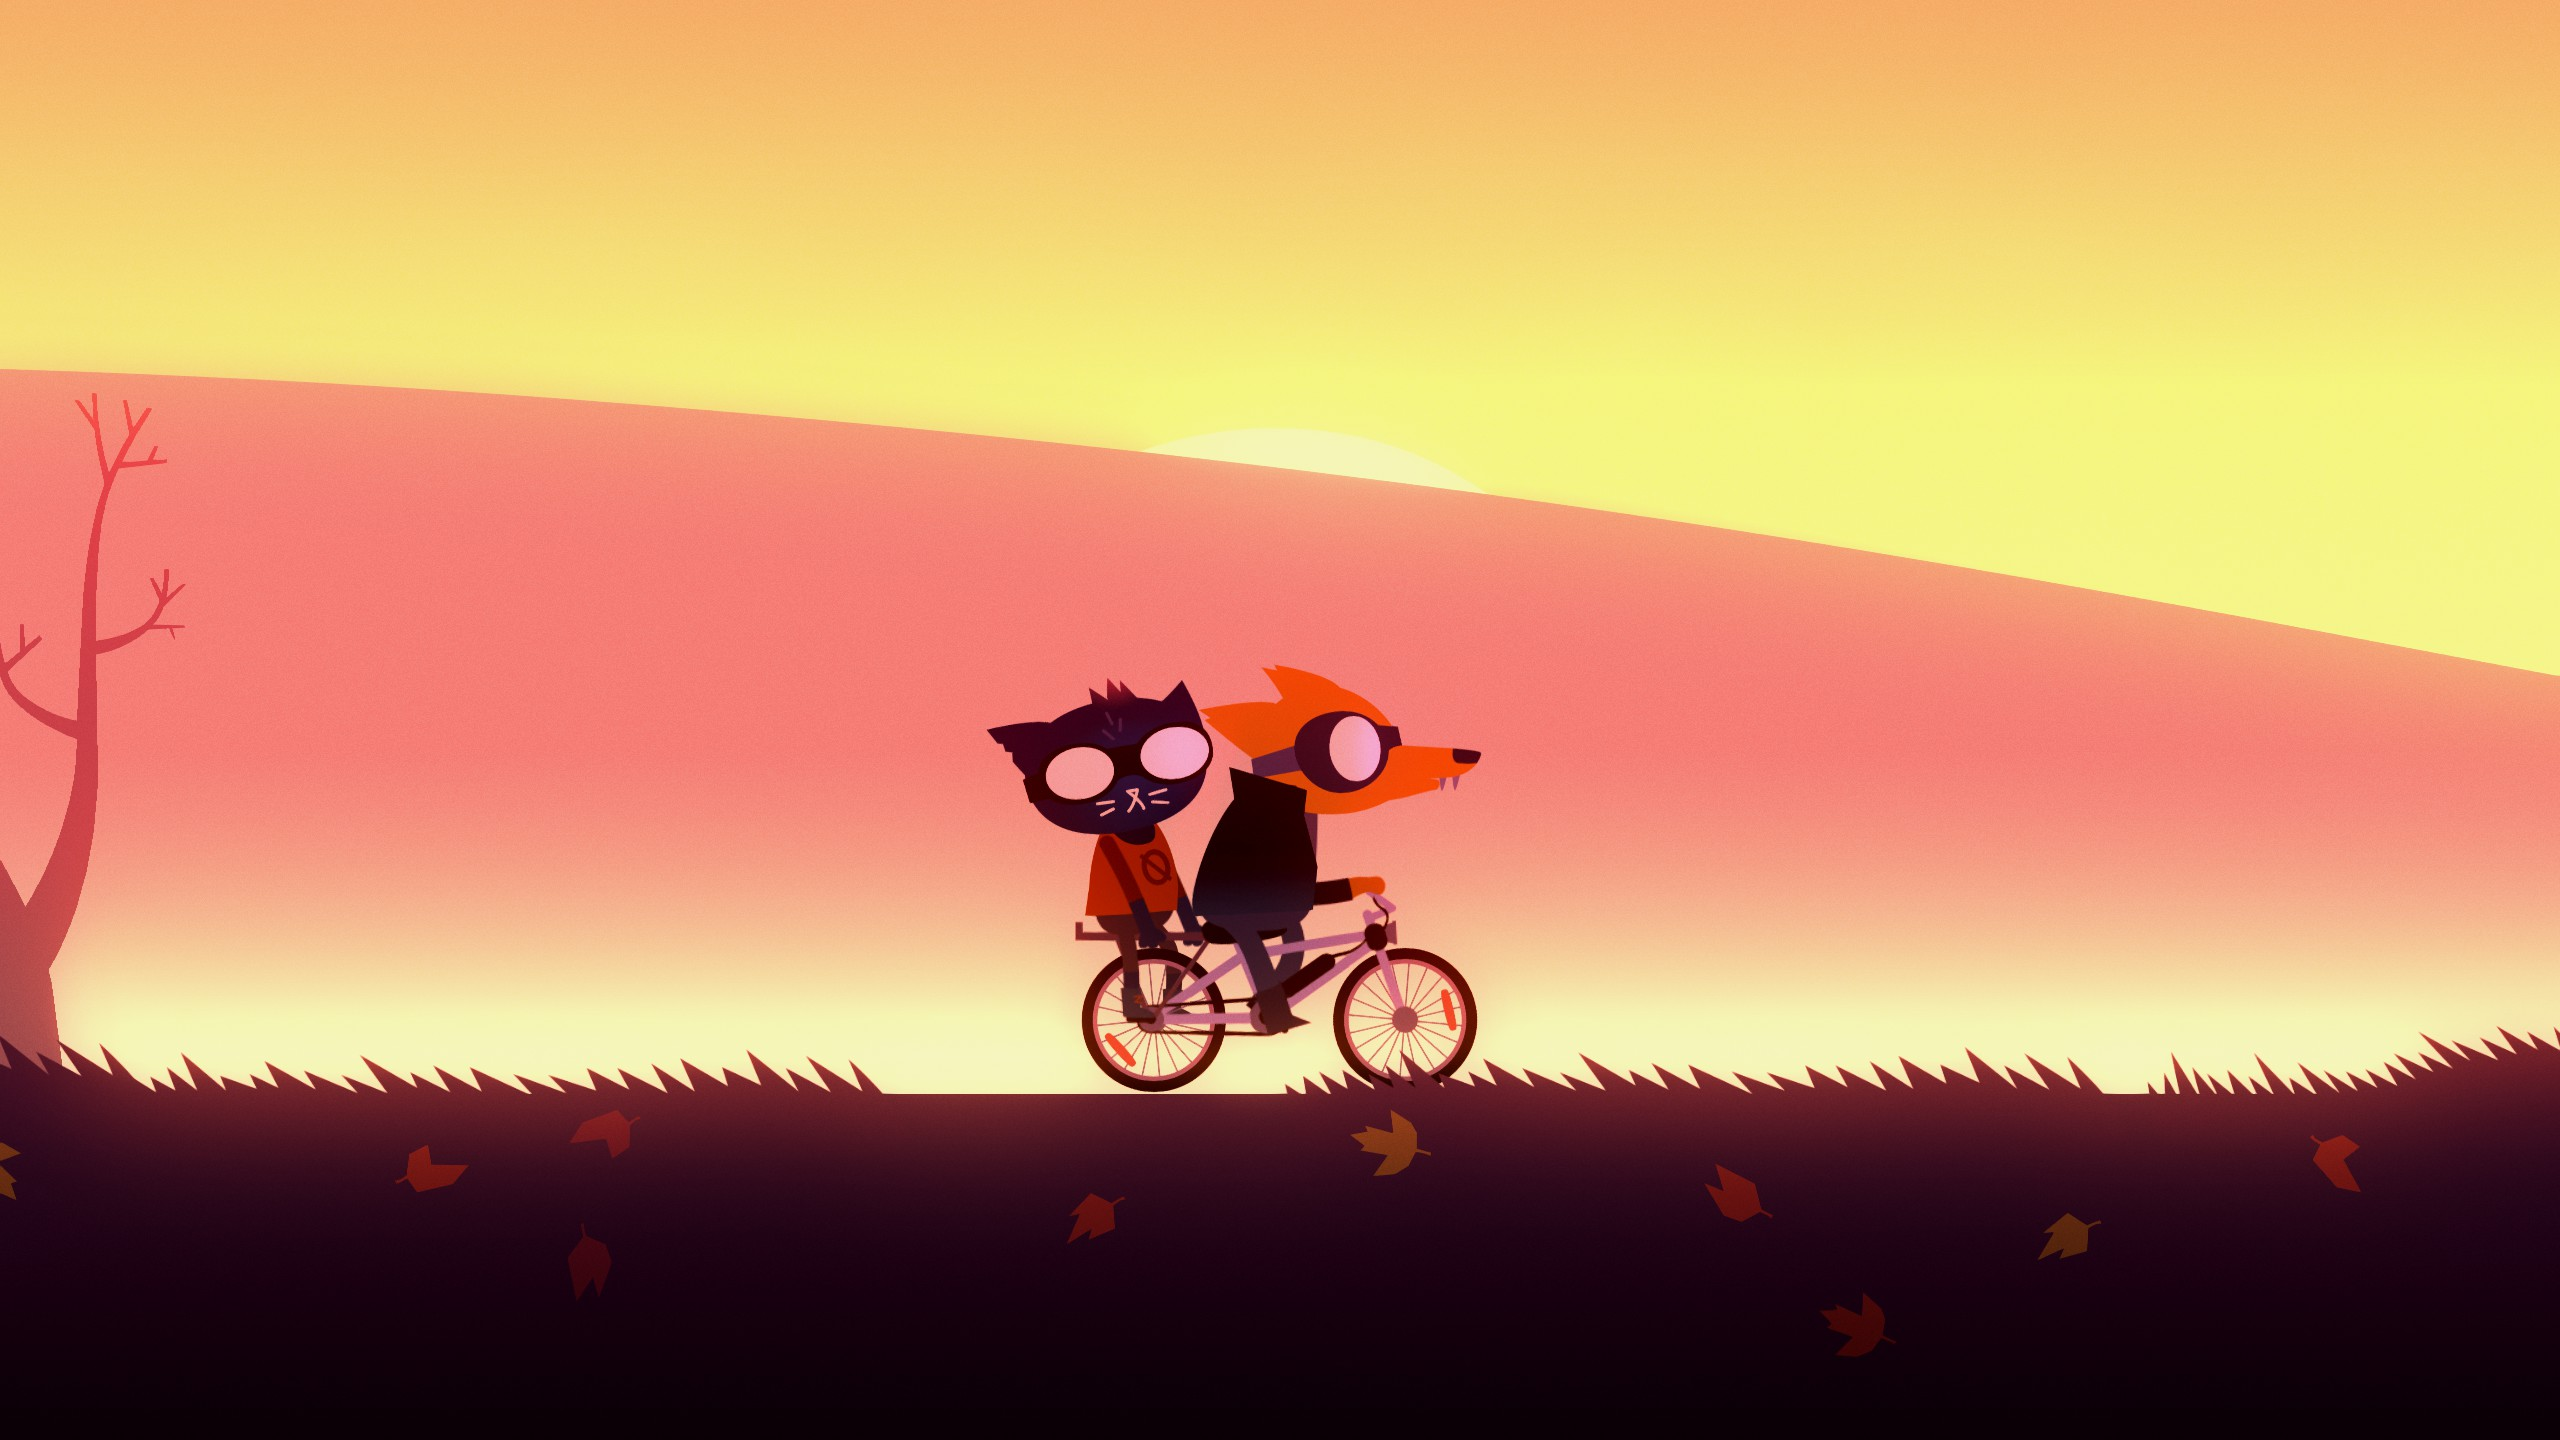 Gregg and Mae ride a bike.